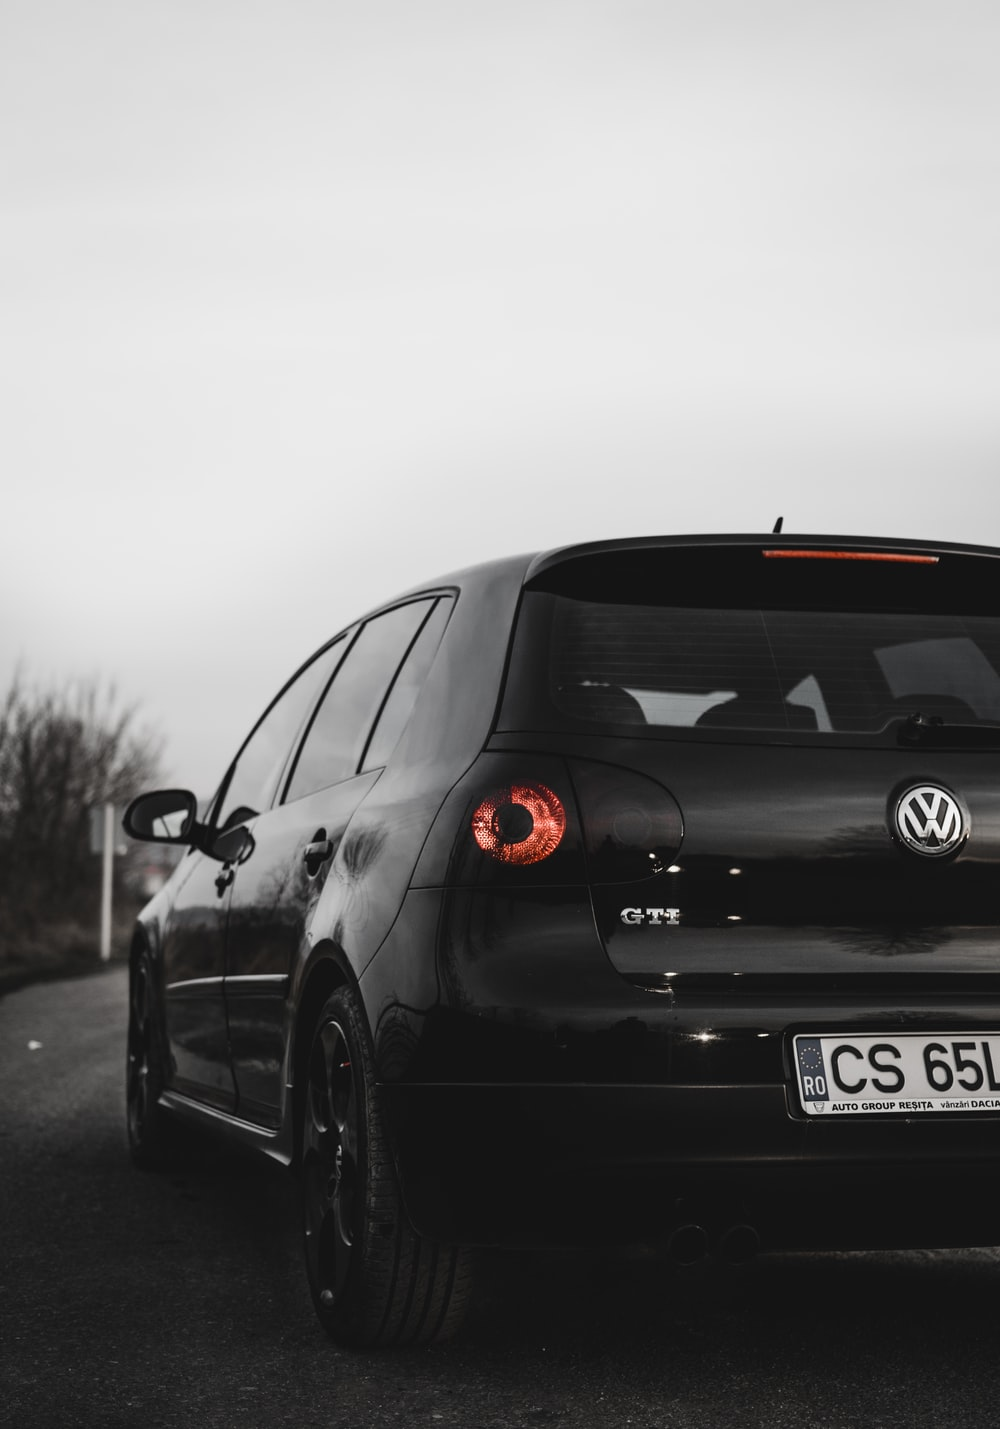 Volkswagen Pictures Download Free Images On Unsplash